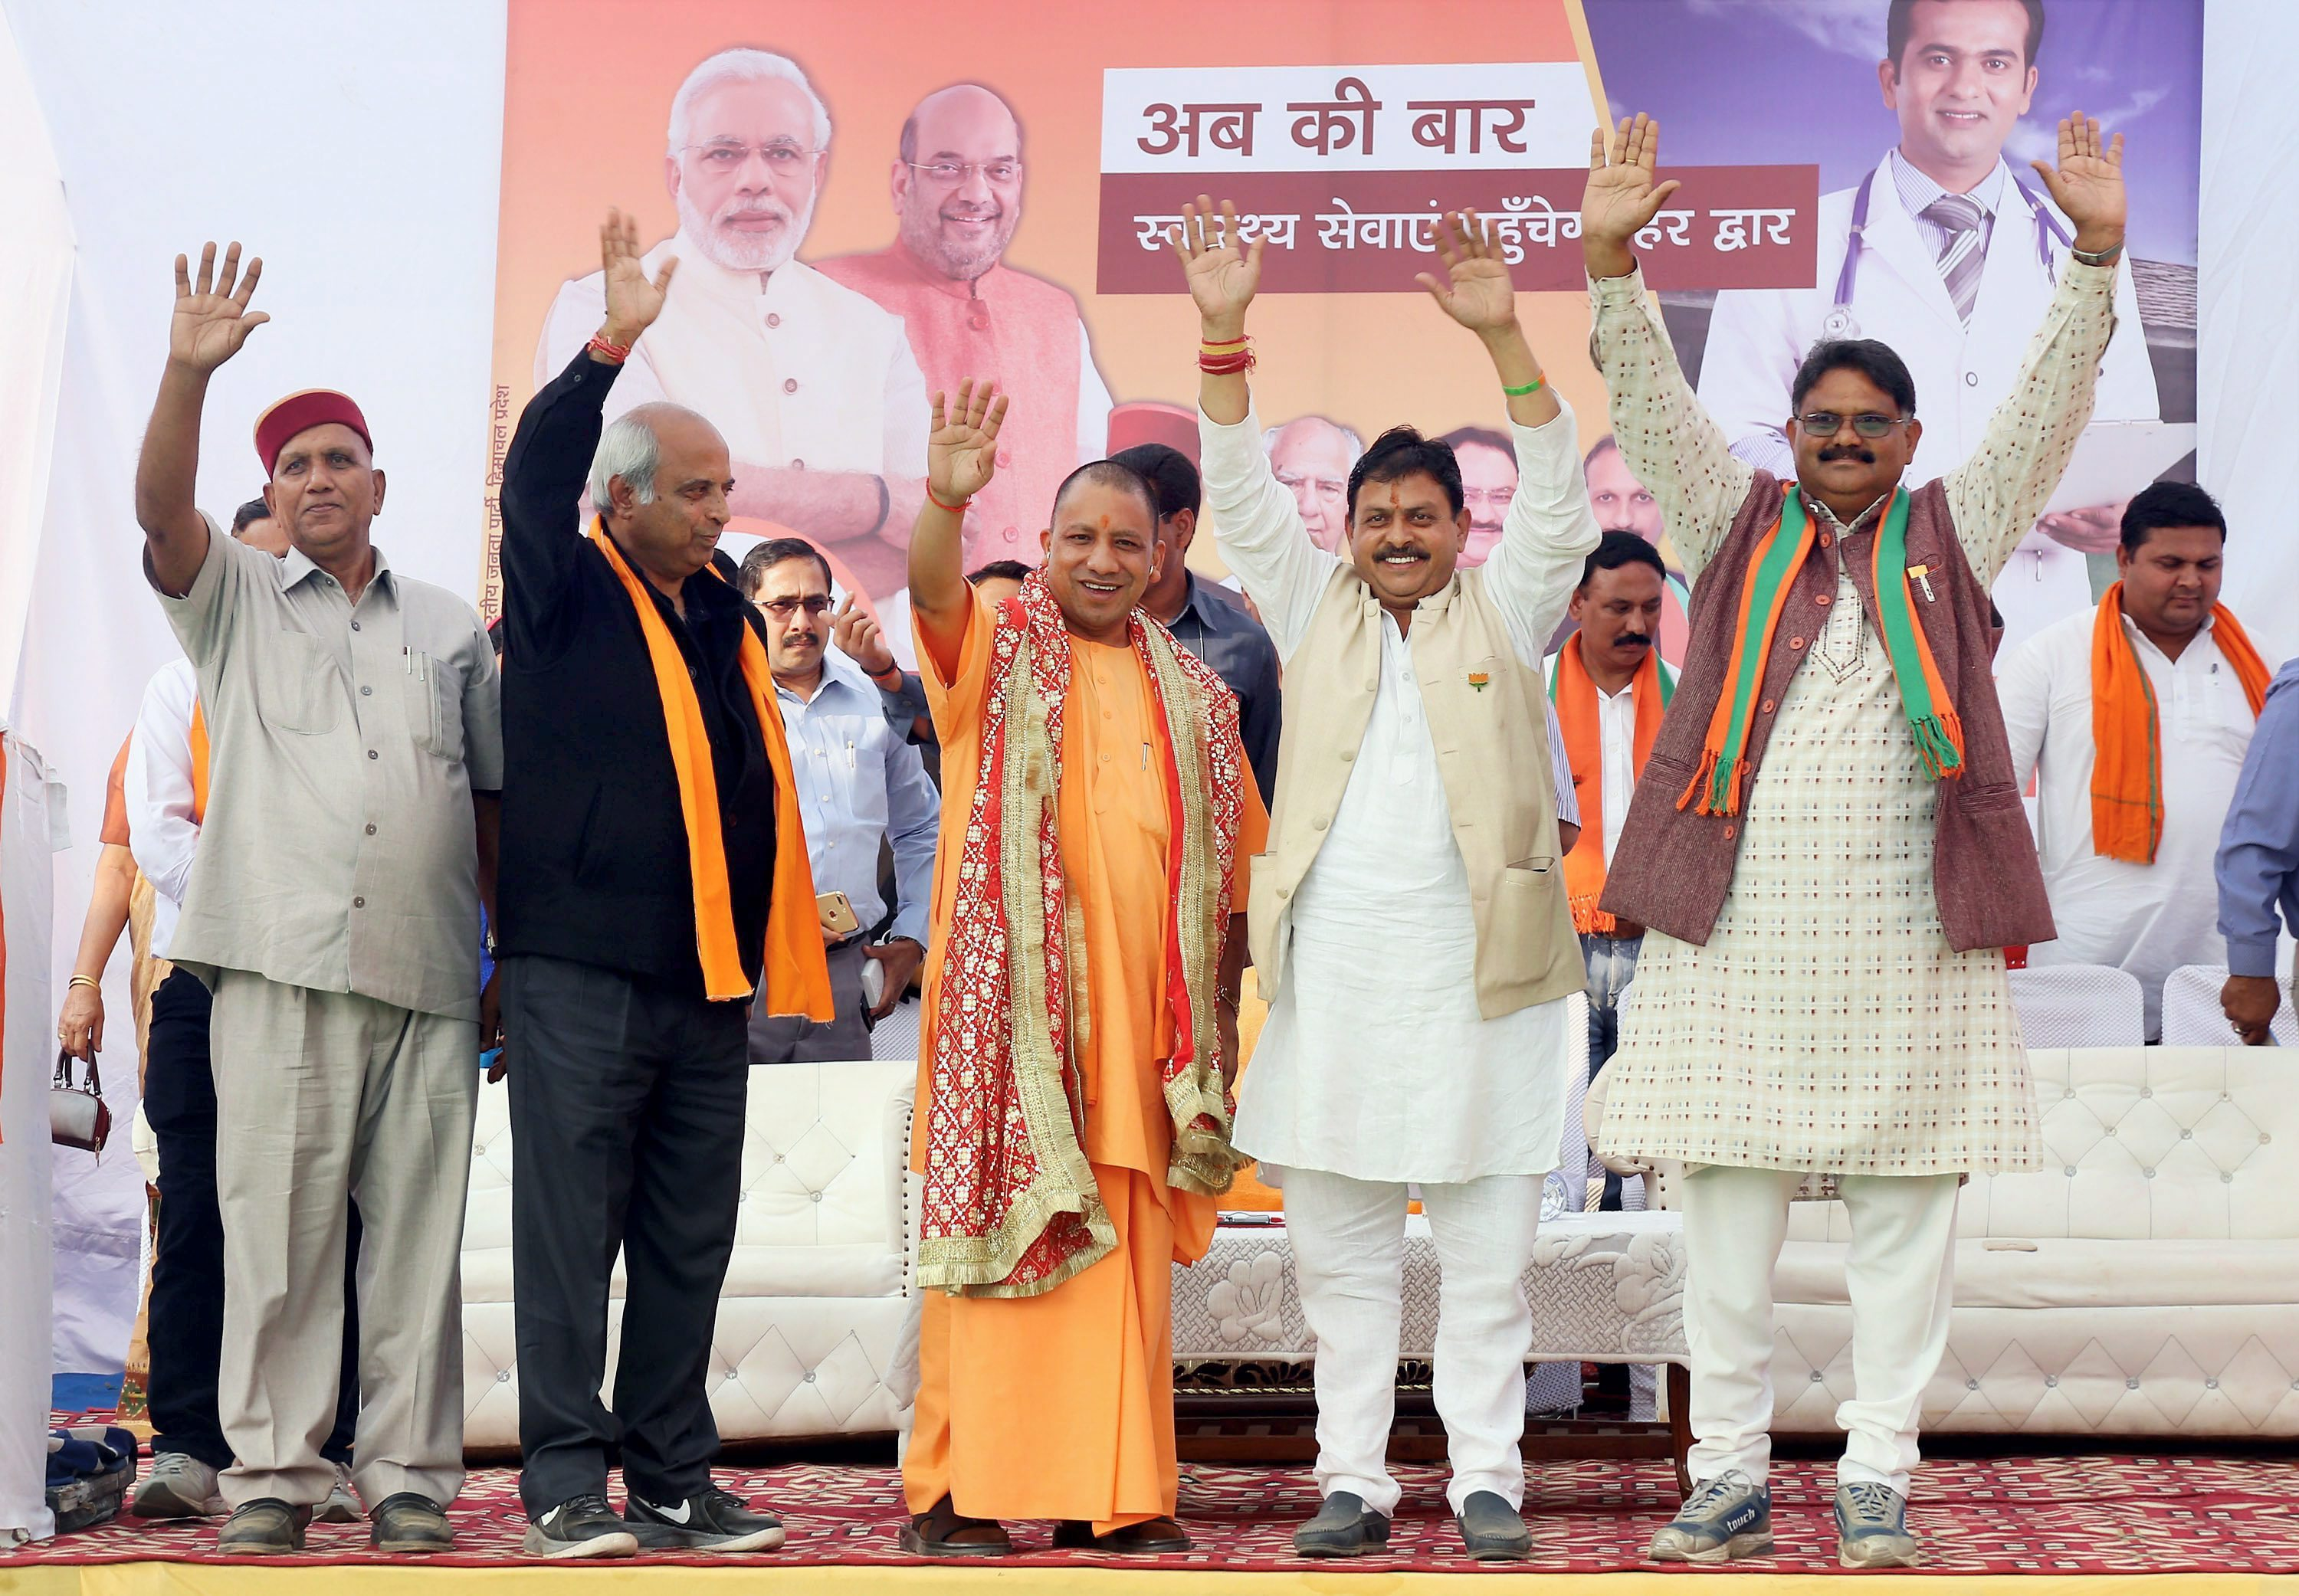 Dharamsala : BJP workers welcome Uttar Pradesh Chief Minister Yogi Adityanath during an election rally while campaigning for party candidate Arun Kumar (Kukka) from Nagrota Bagwan in Dharamsala on Monday. PTI Photo (PTI10_30_2017_000163B)